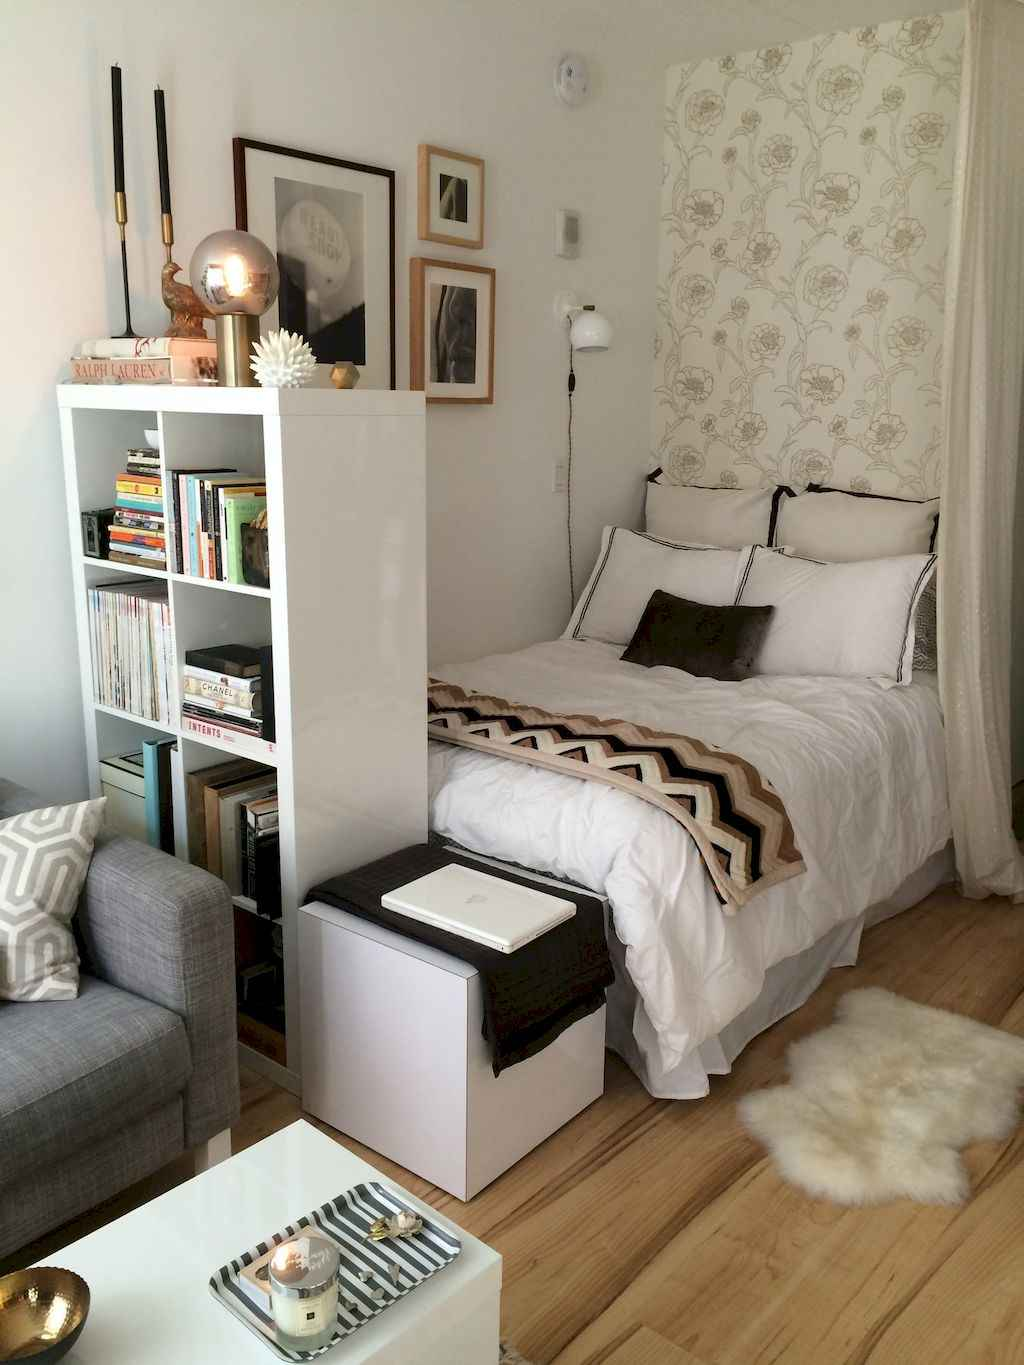 Couples first apartment decorating ideas (98)